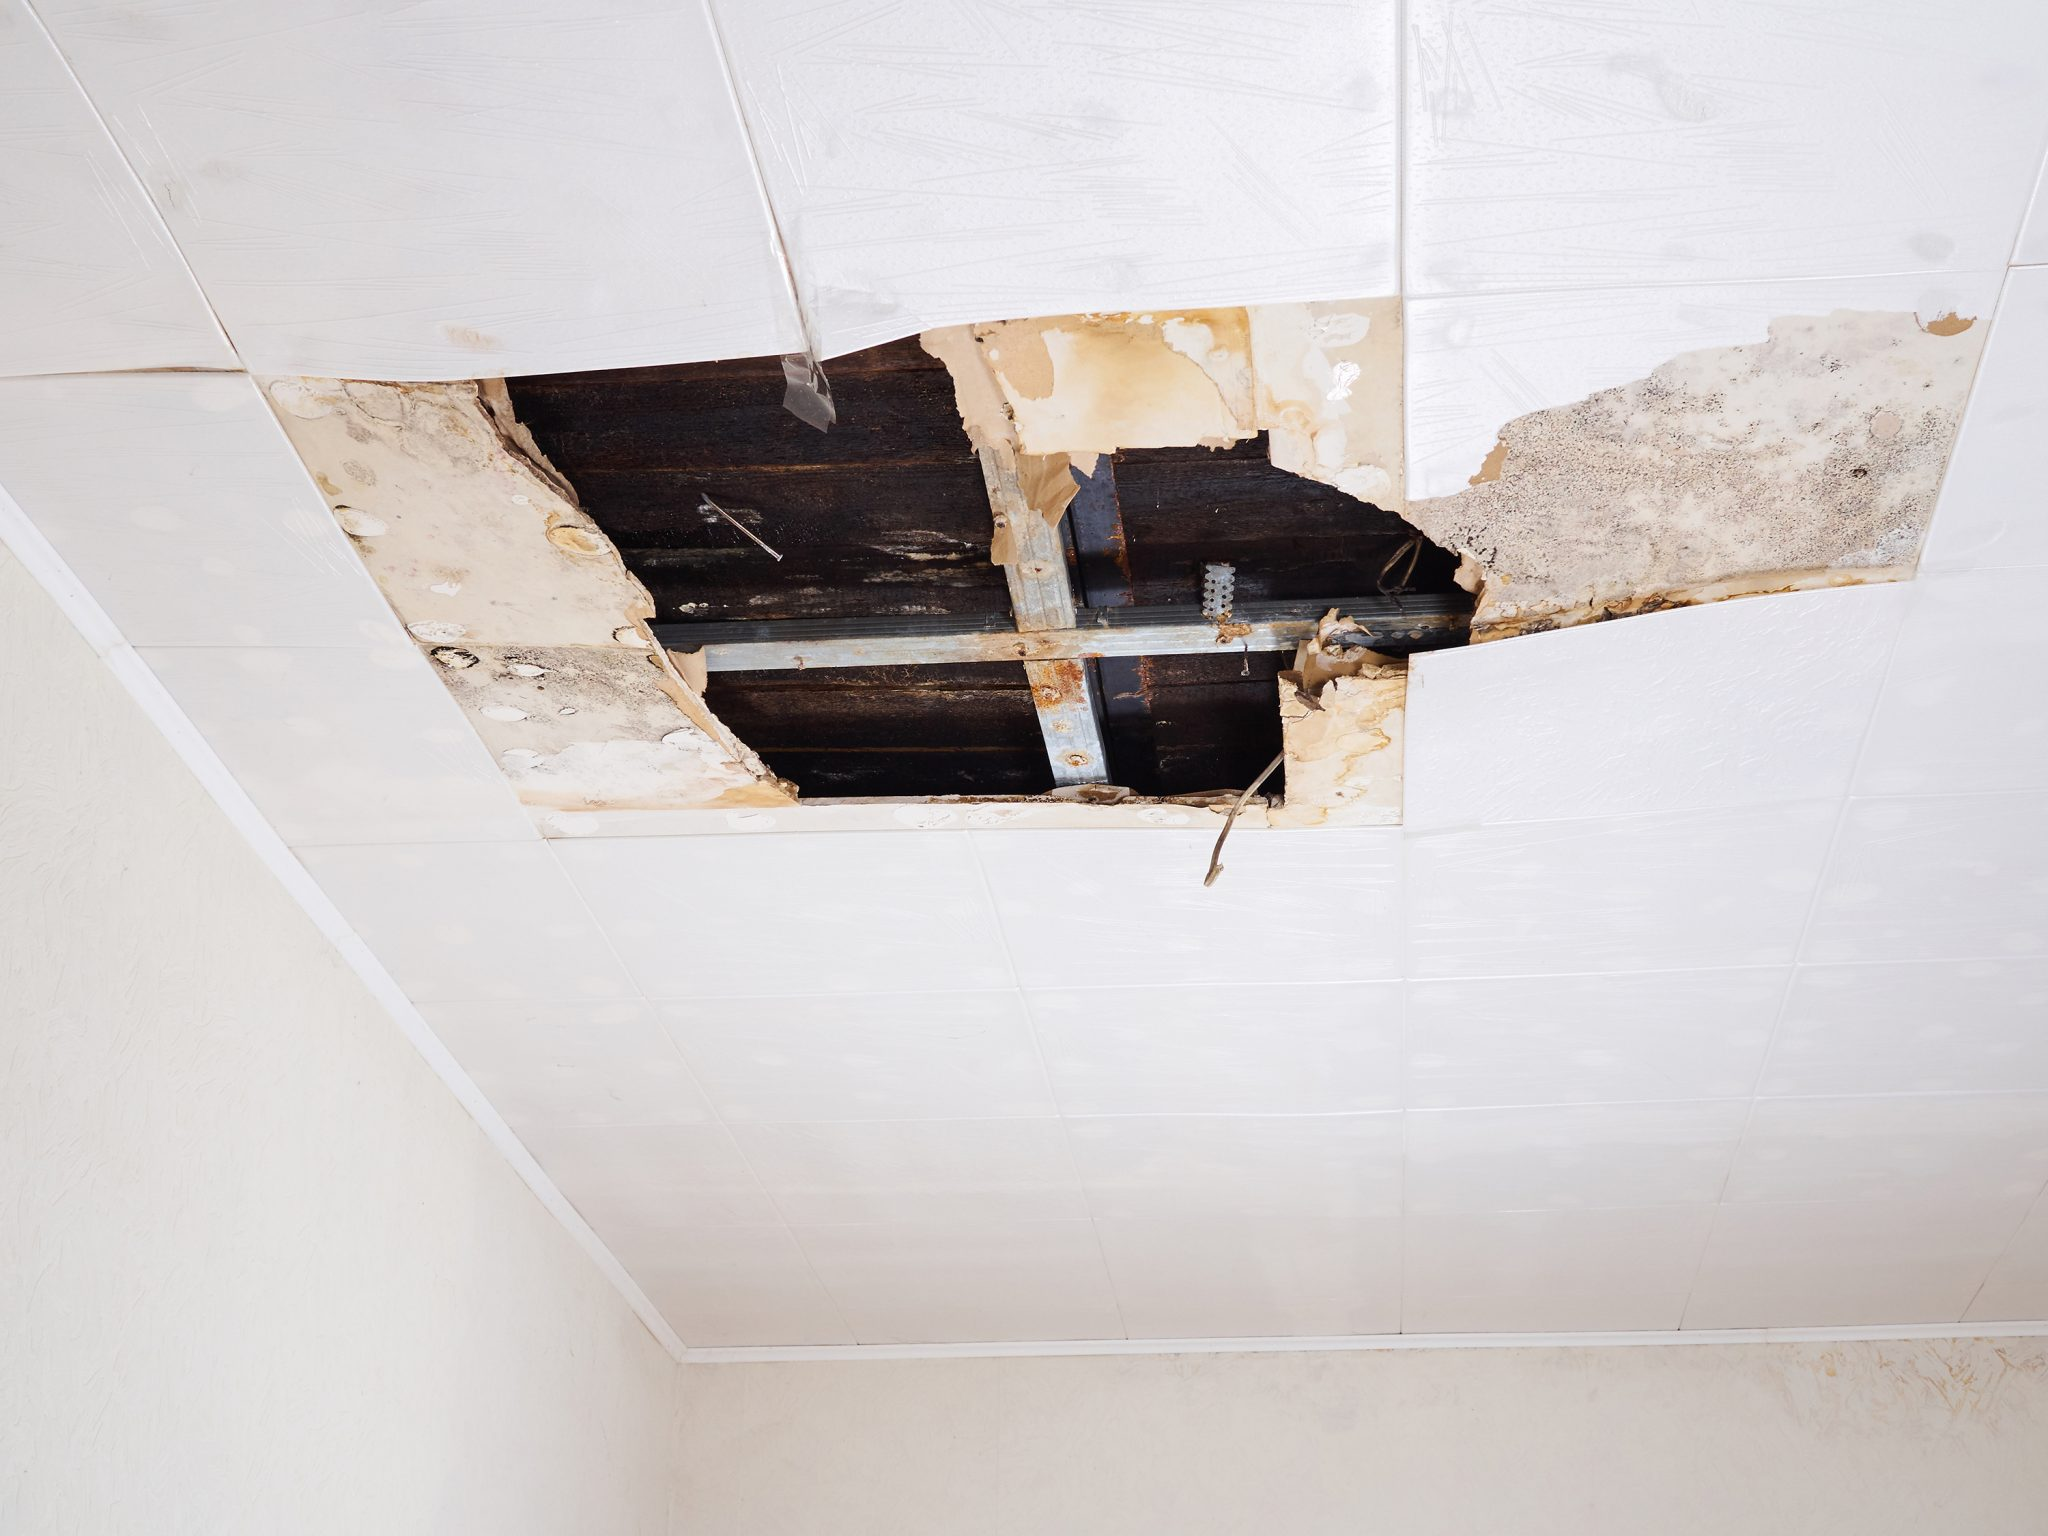 Water damaged ceiling with multiple panels damaged